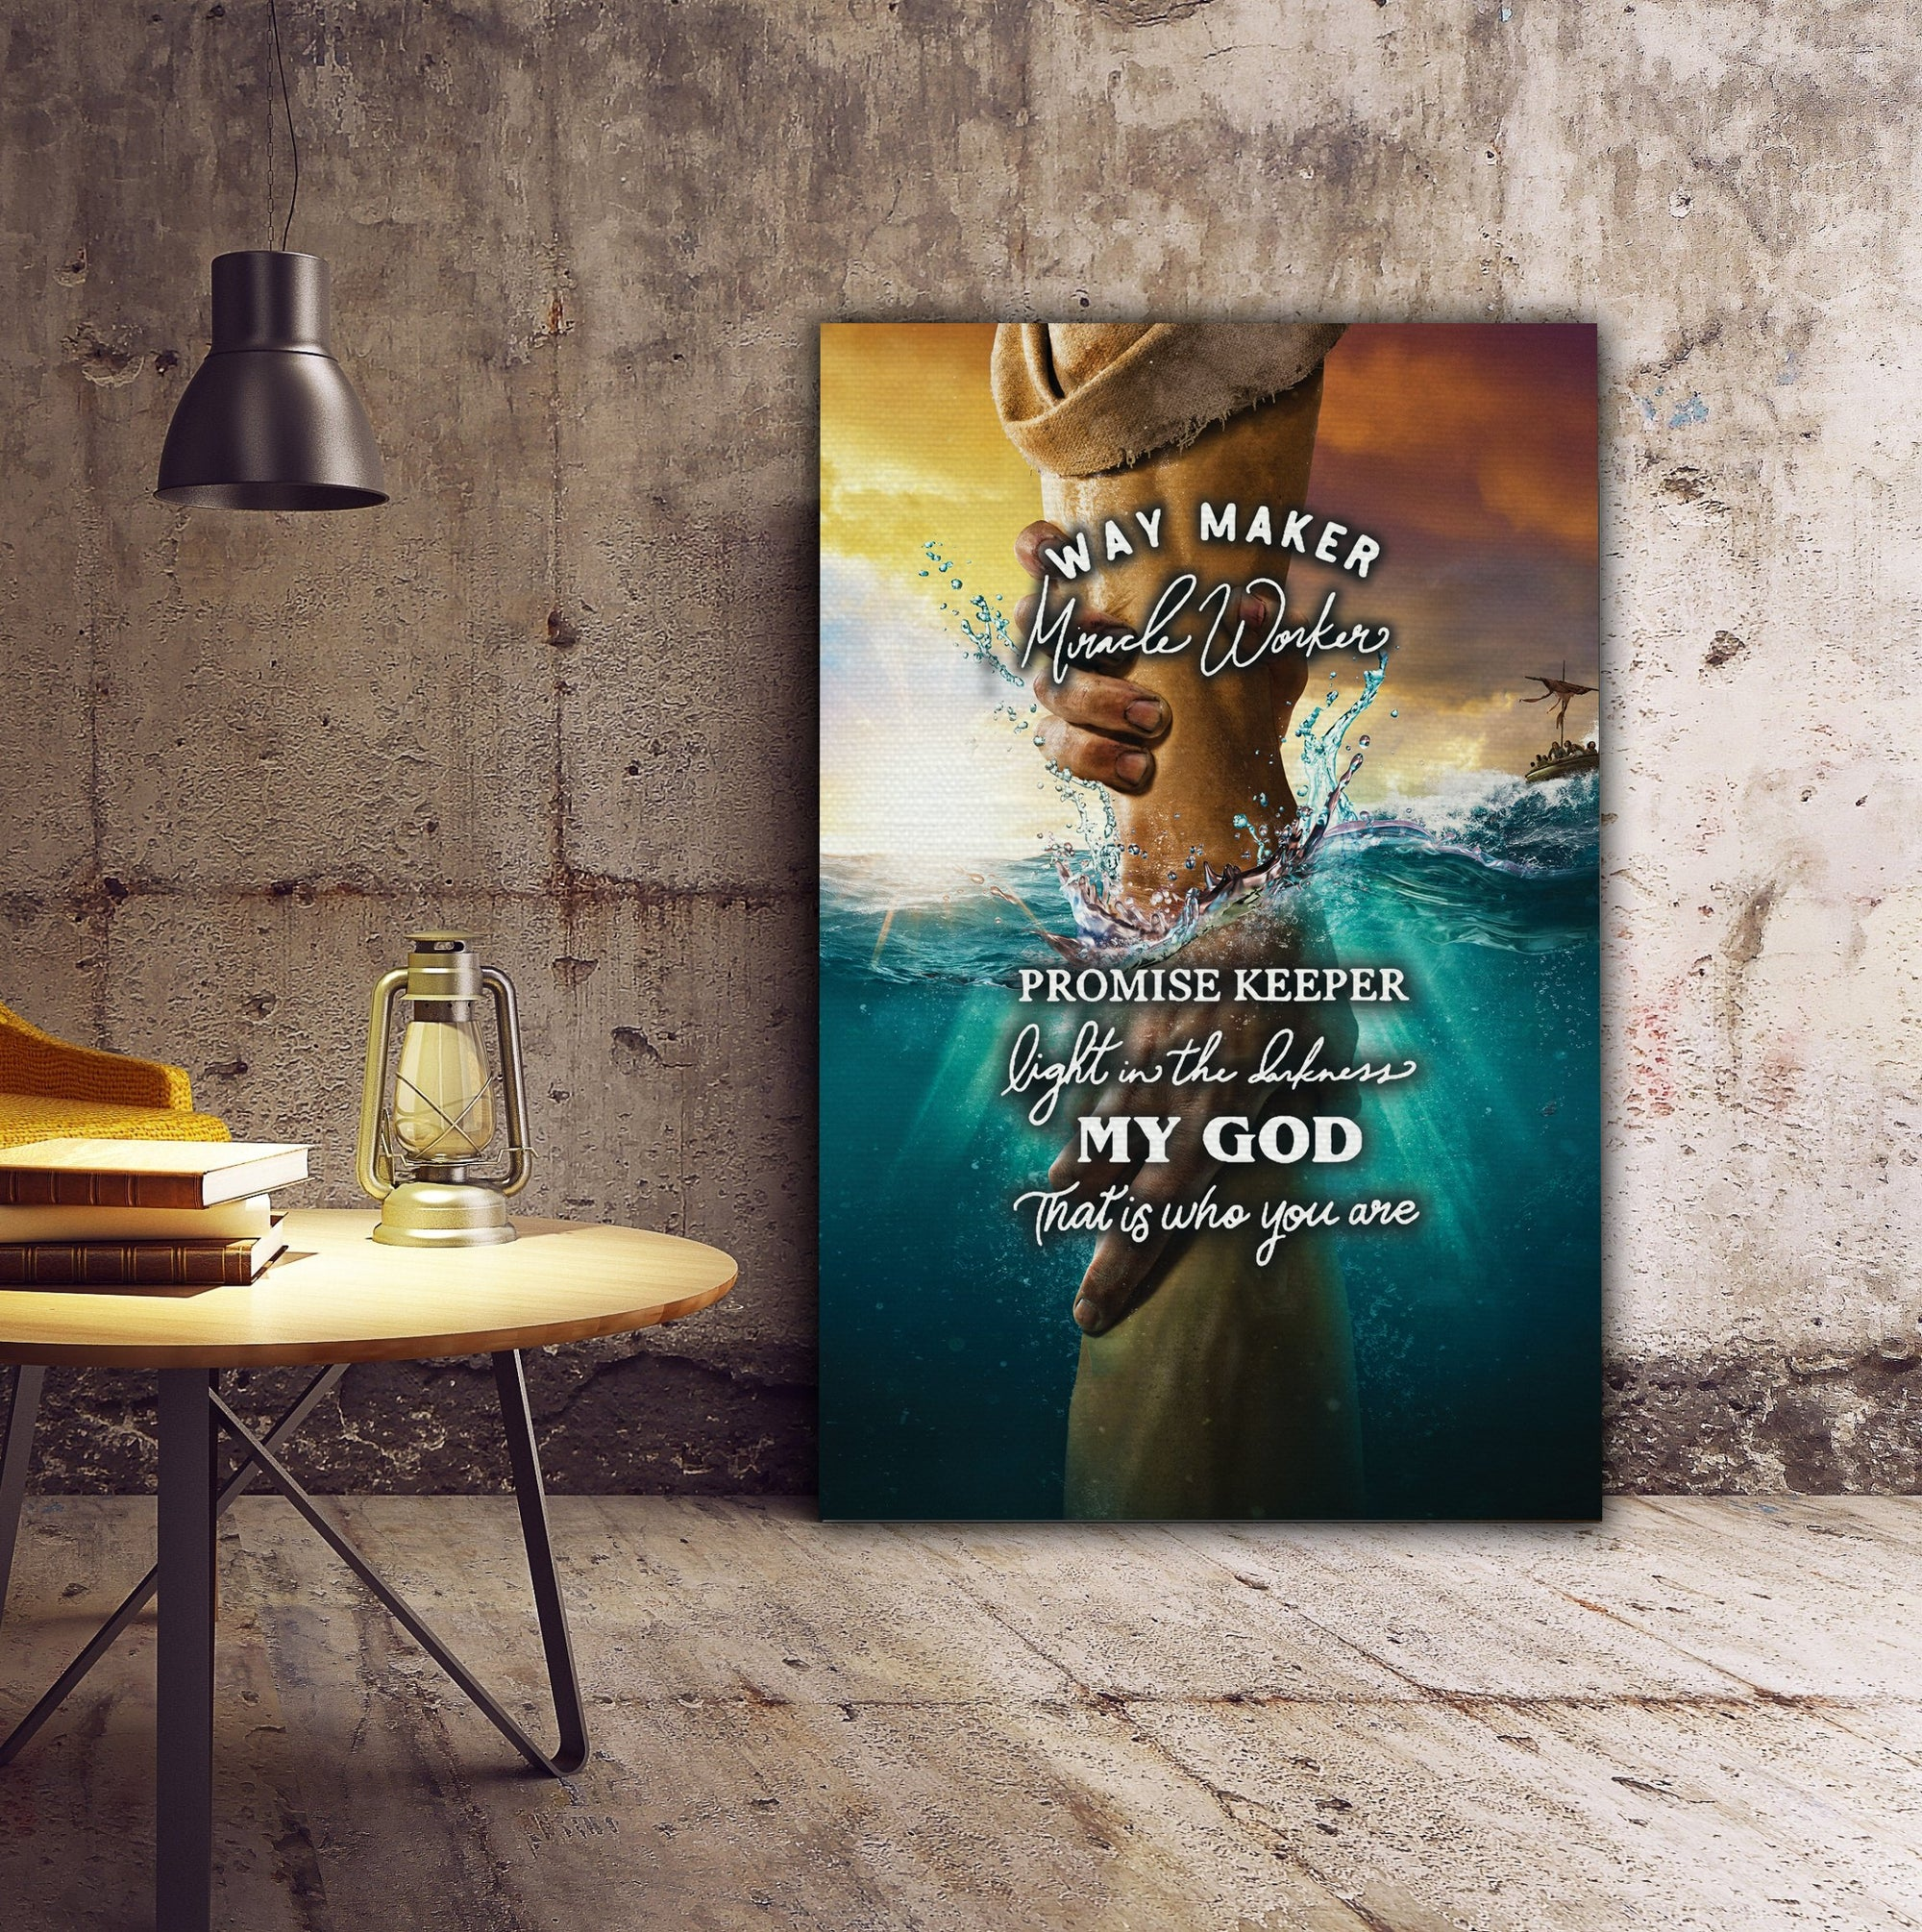 3D Canvas, Poster - Way Maker Miracle Worker - 4zOutfitters Merchandise